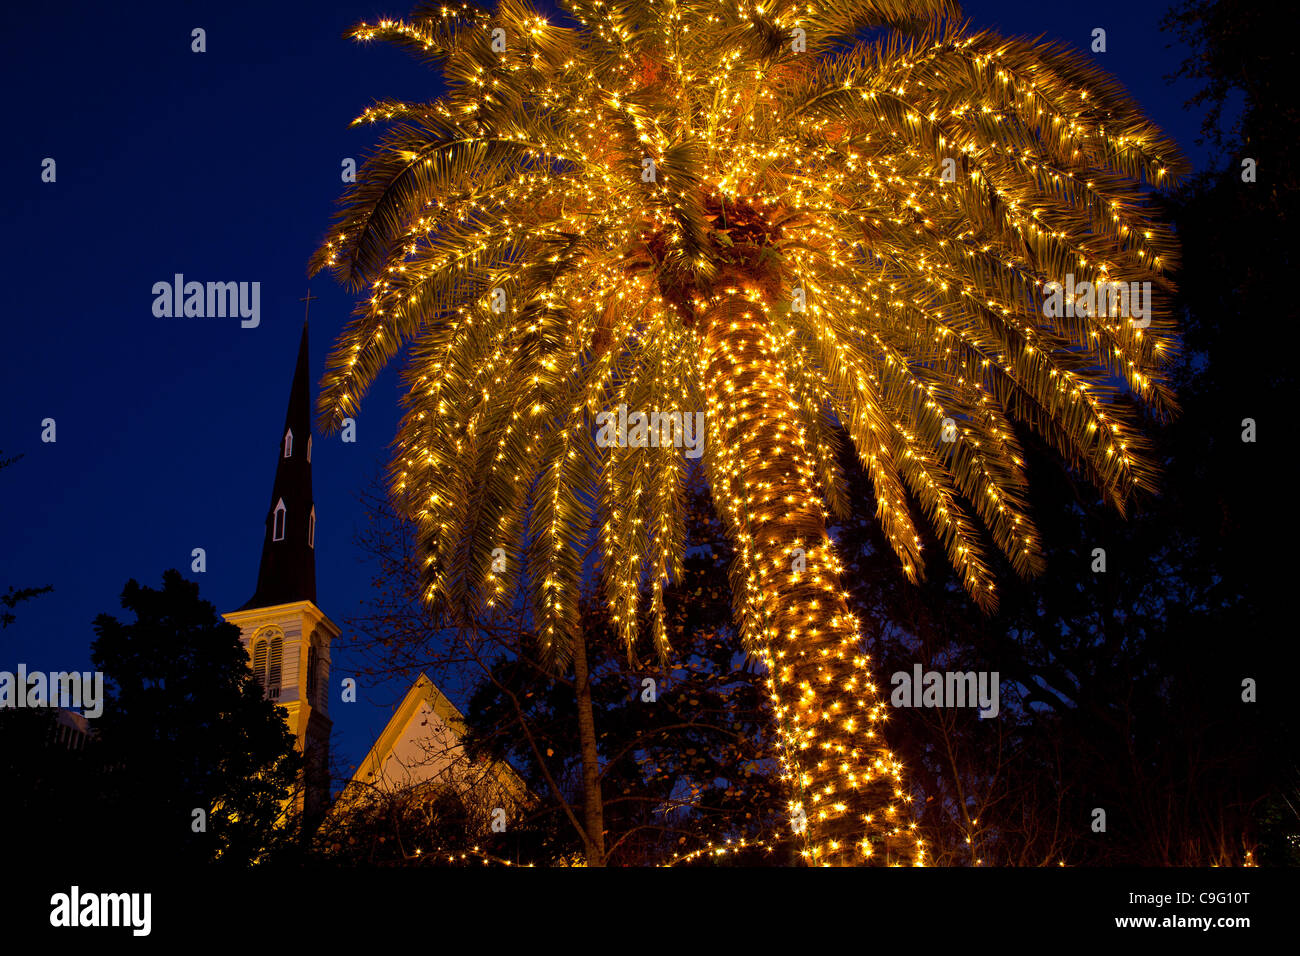 A Palm Tree Decorated With Christmas Lights Frames Citadel Square  - Christmas Lights In Sc